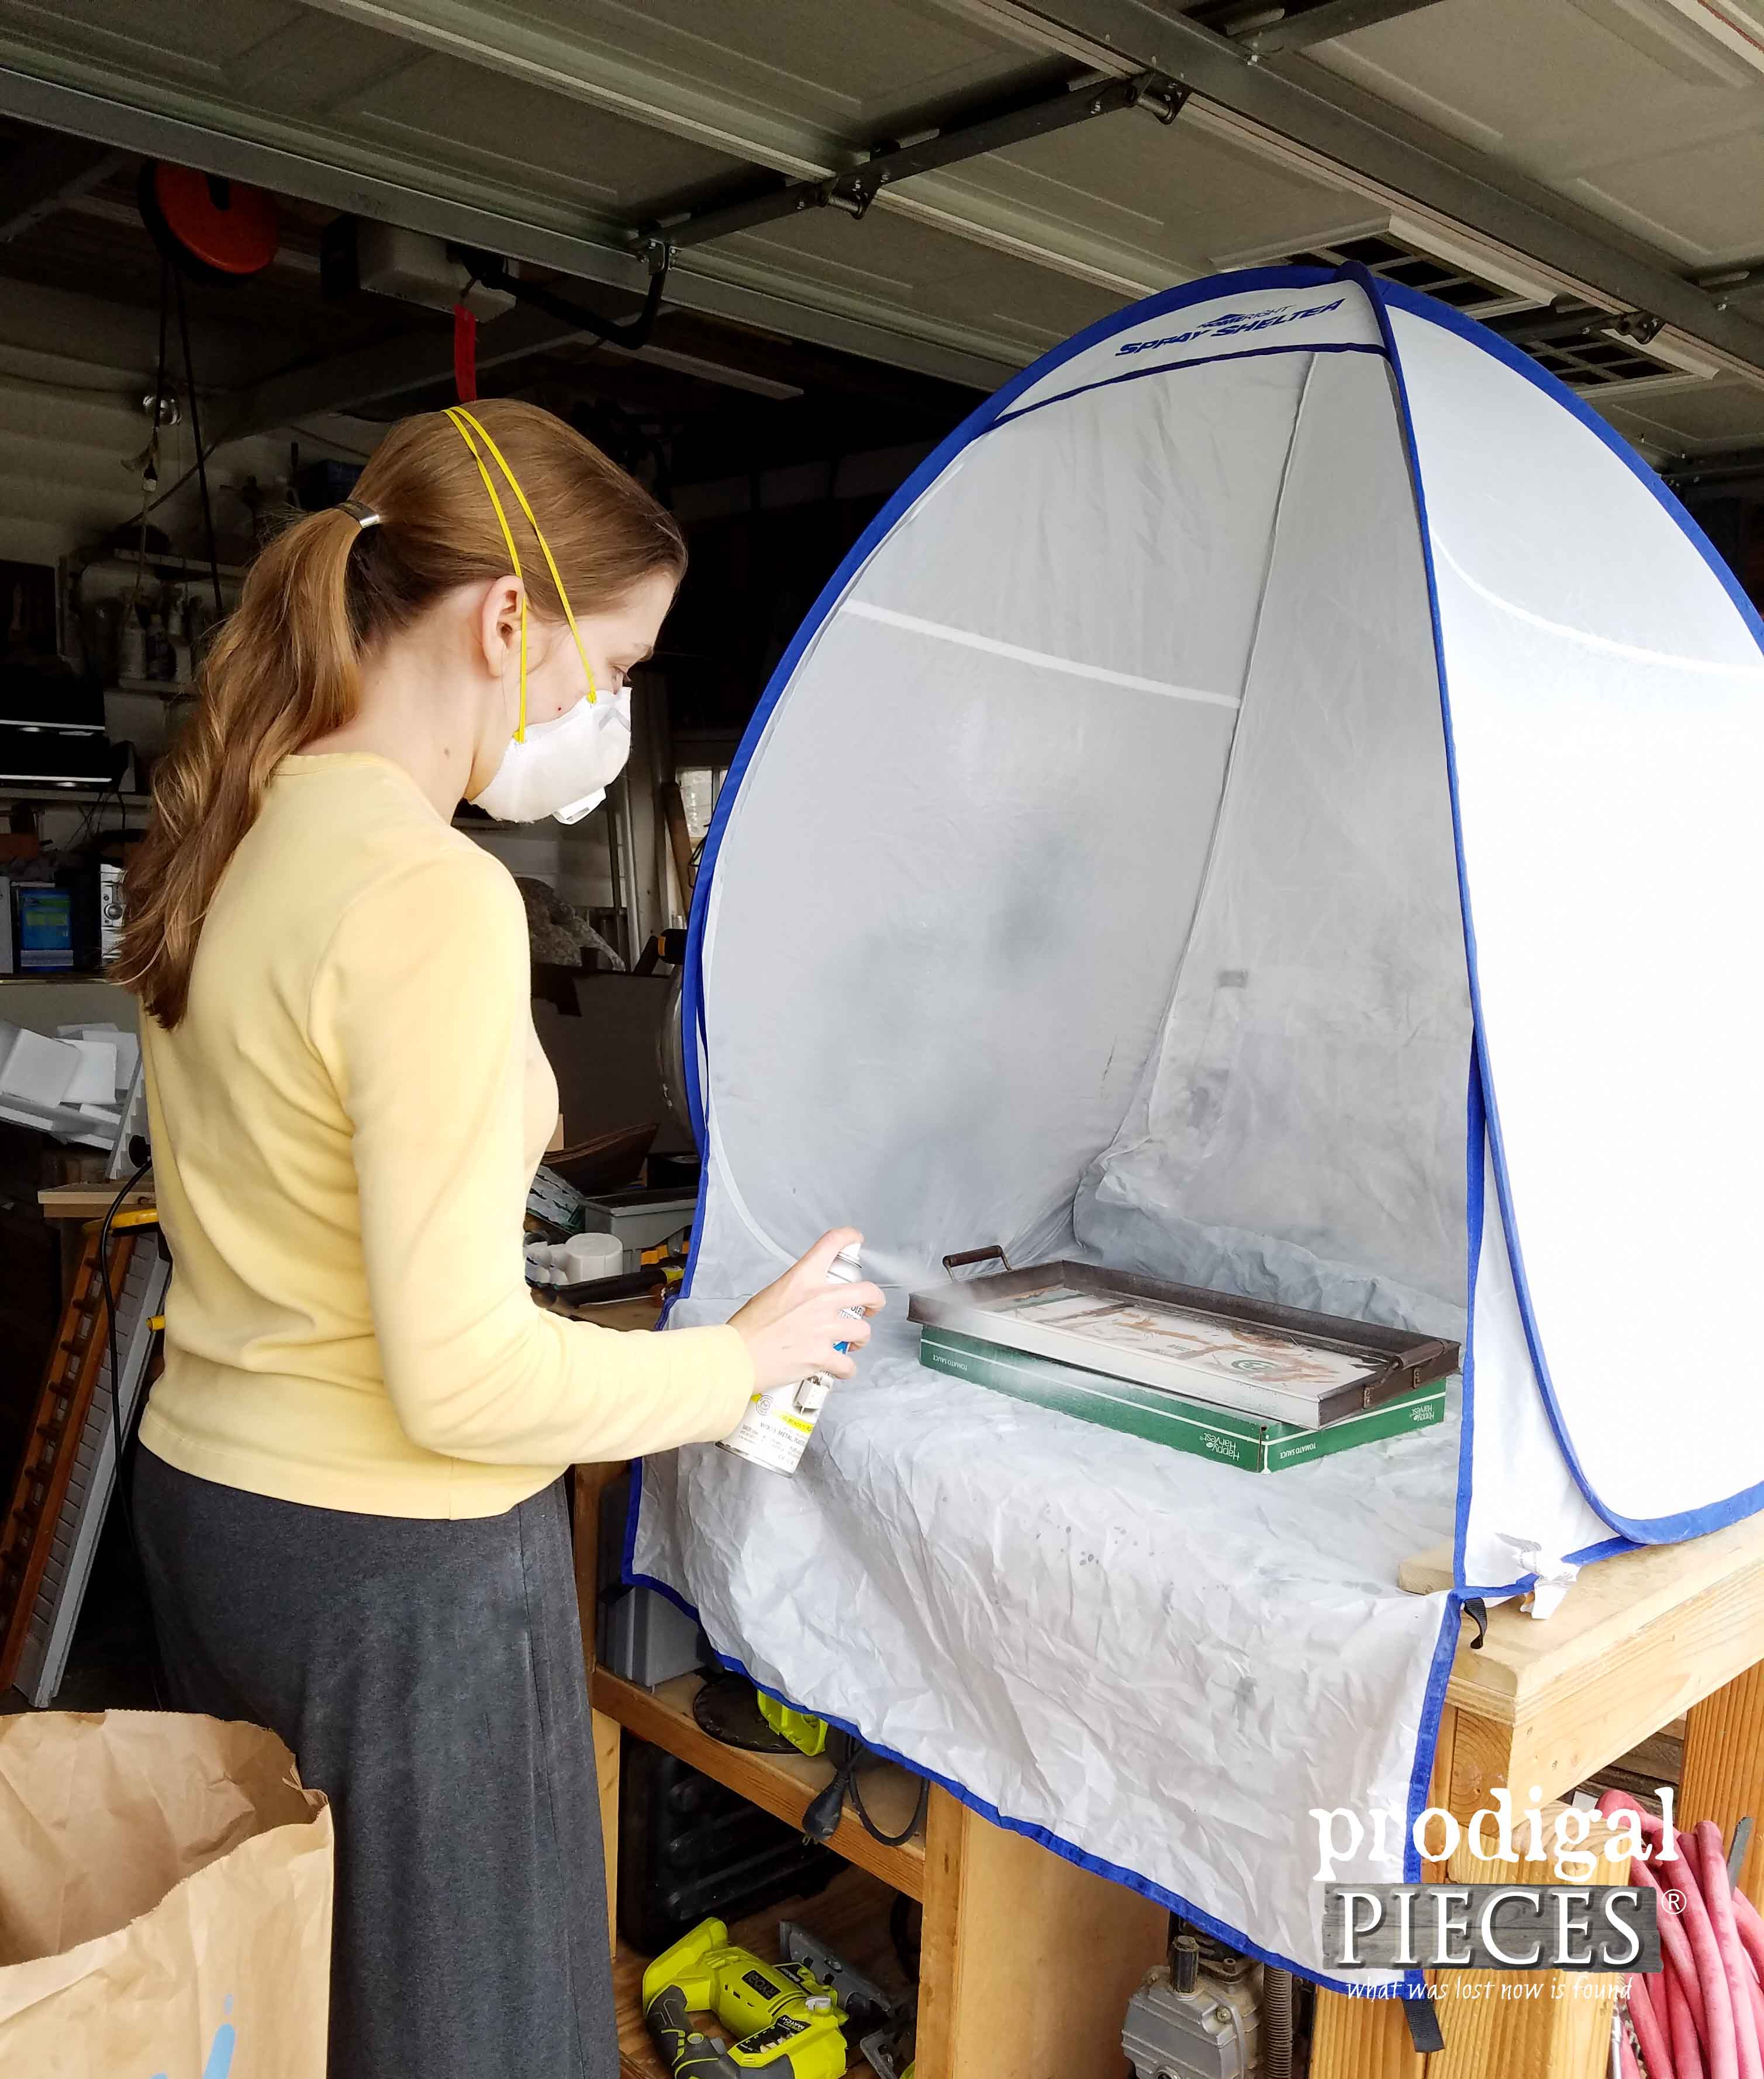 Small Spray Shelter by HomeRight for Home Decor Projects by Prodigal Pieces | prodigalpieces.com